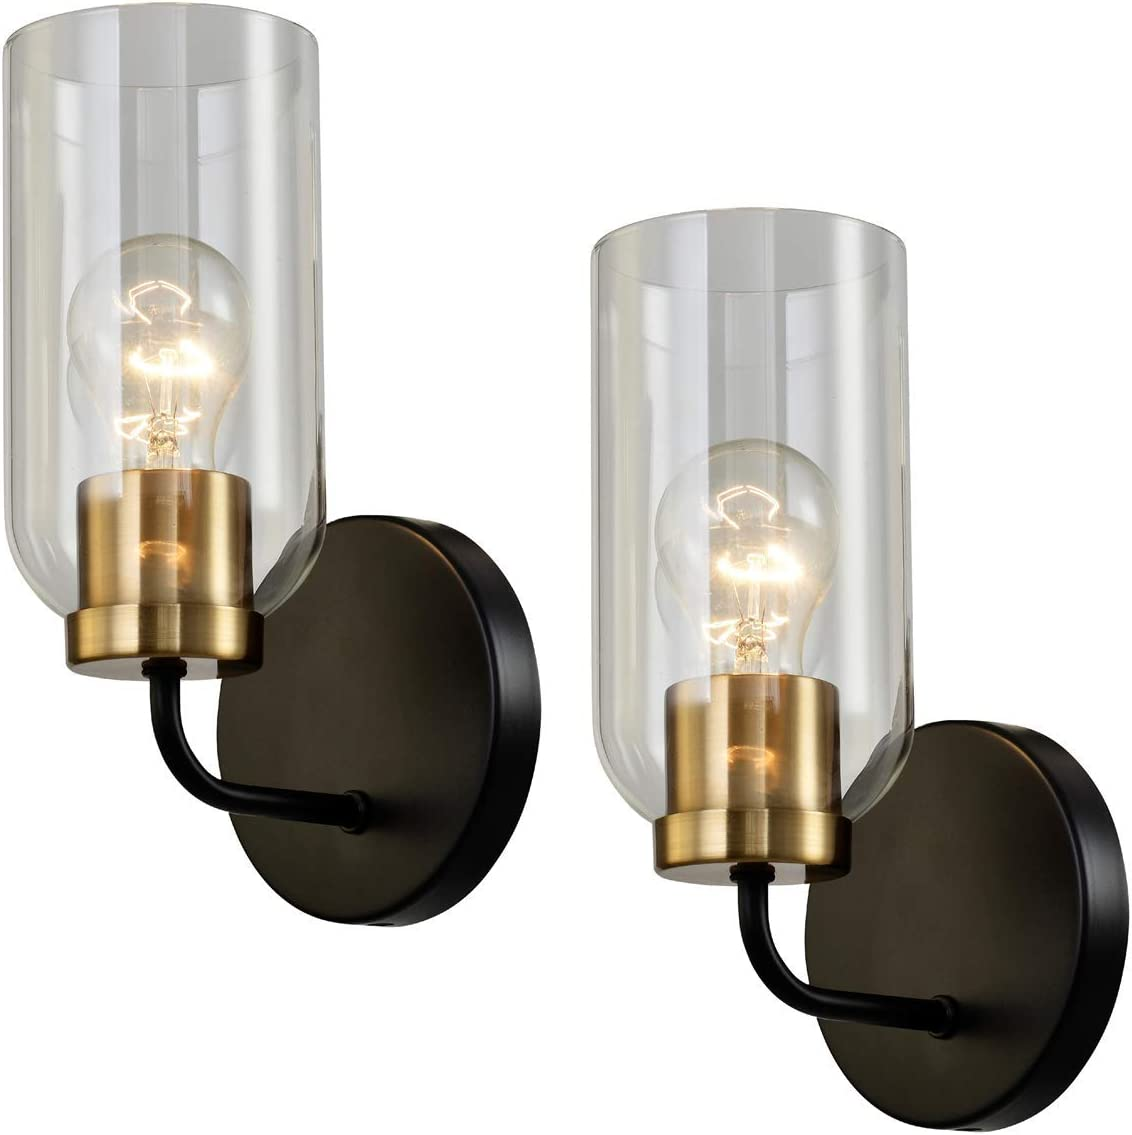 Vintage Wall Sconce with Clear Glass Shade,Industrial Modern Bathroom Sconces Wall Lighting Glass,Stairway Lighting Indoor,Black and Gold Wall Lamps for Bedroom Hallway Living Room 2 Pack UL Listed